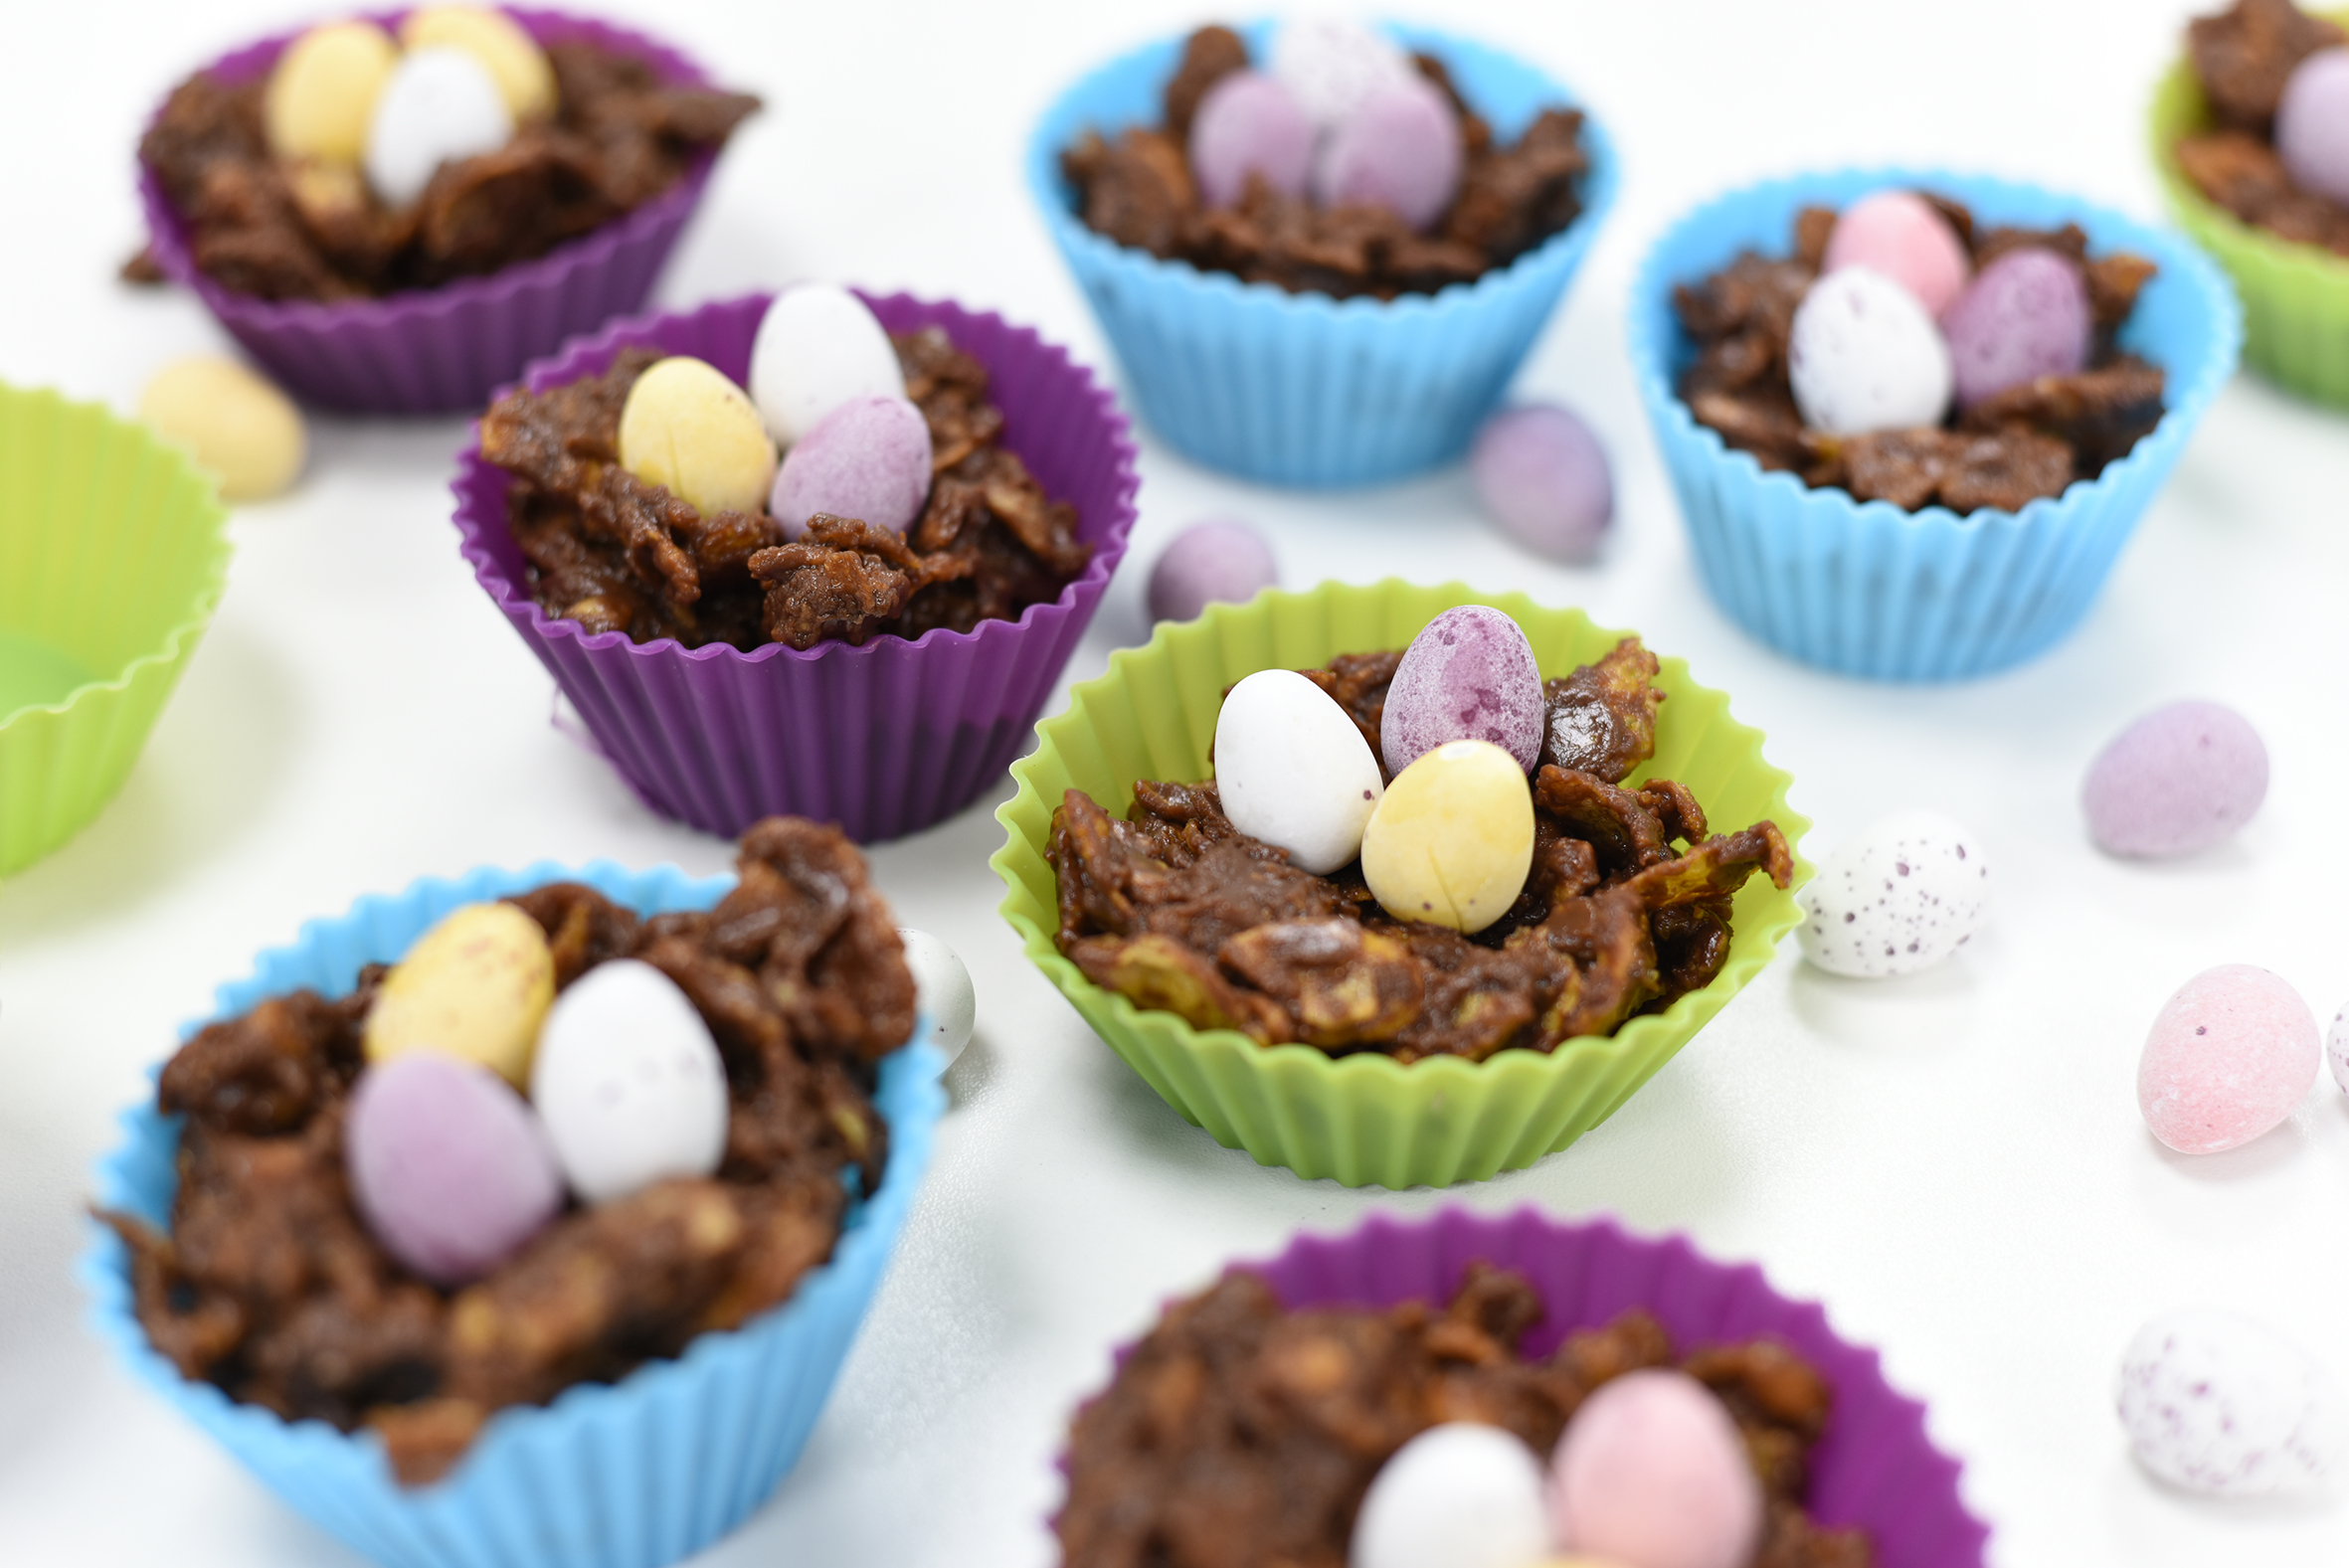 chocolate easter egg nest cakes home baking children kids celebration season holiday lent